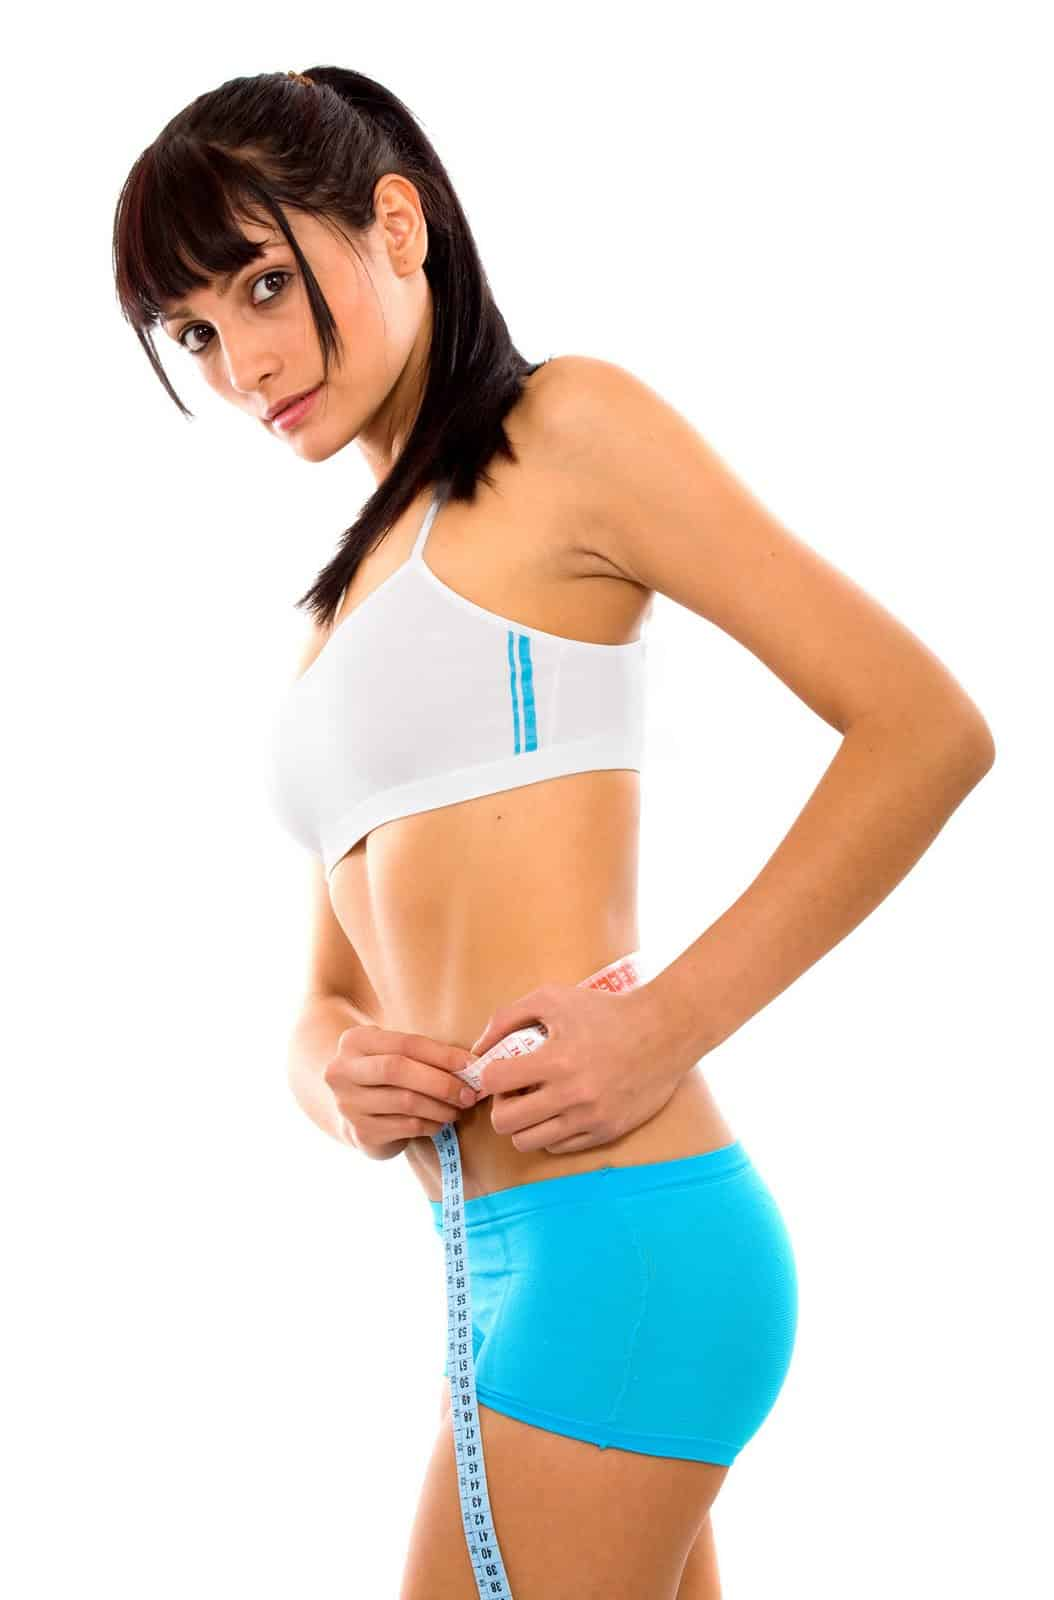 Types of Exercises Necessary for Losing Excess Weight